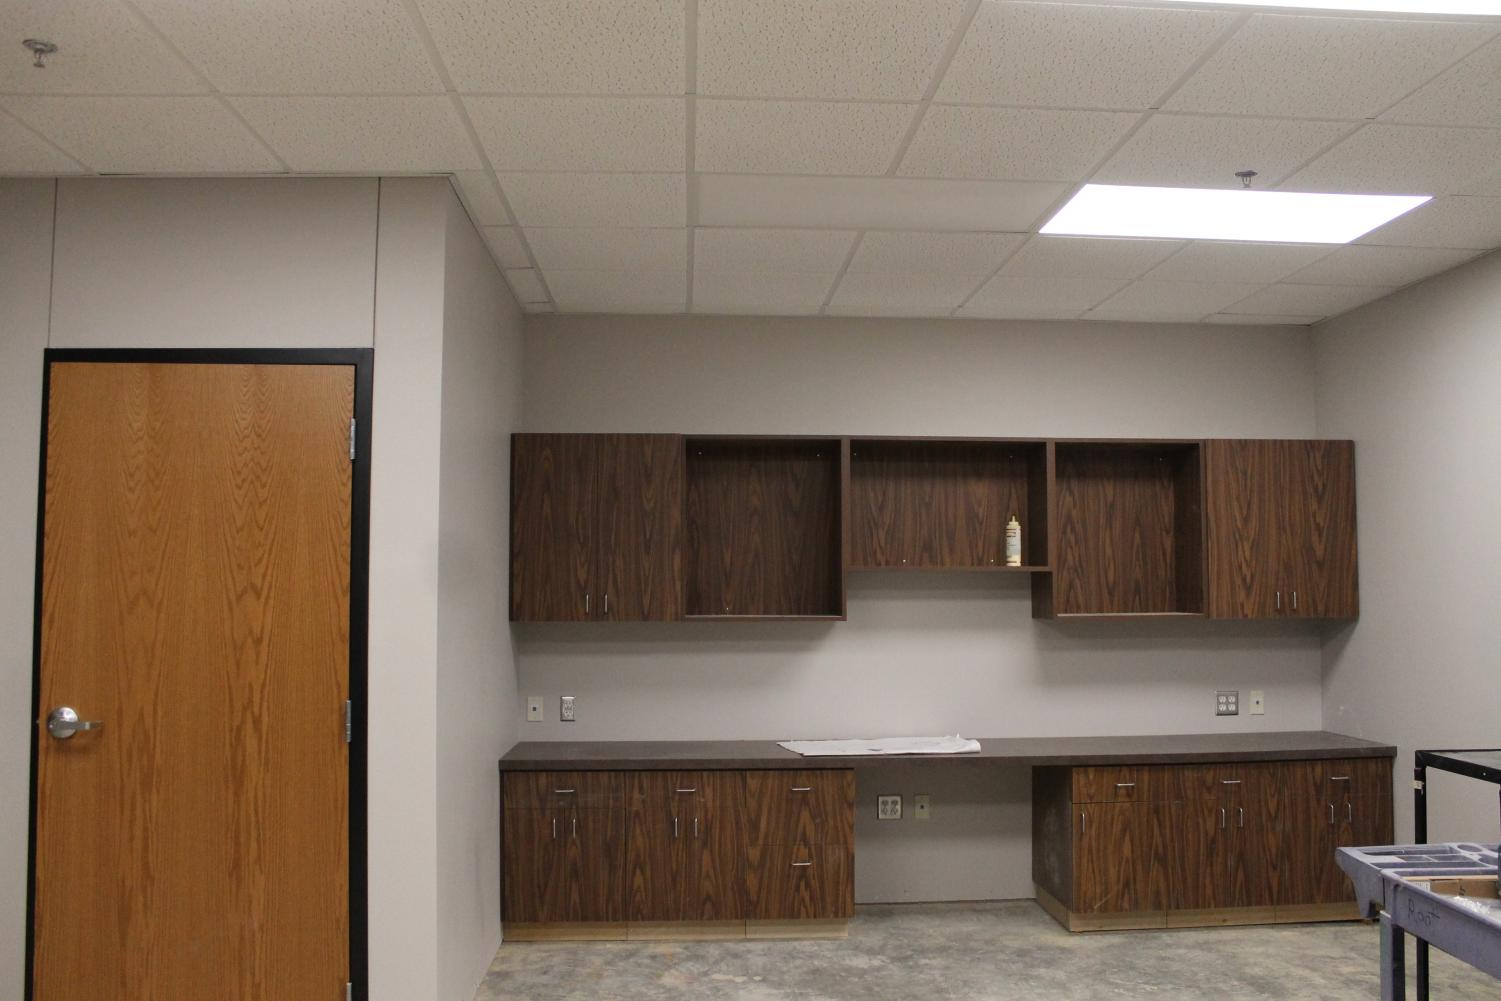 Construction+continues+in+the+new+offices.+The+cabinets+and+shelves+are+being+installed+in+Superintendent+Mr.+Lamb%27s+office.+%22I+am+very+excited+to+see+the+new+offices%2C%22+said+sophomore+Saffron+Eugea